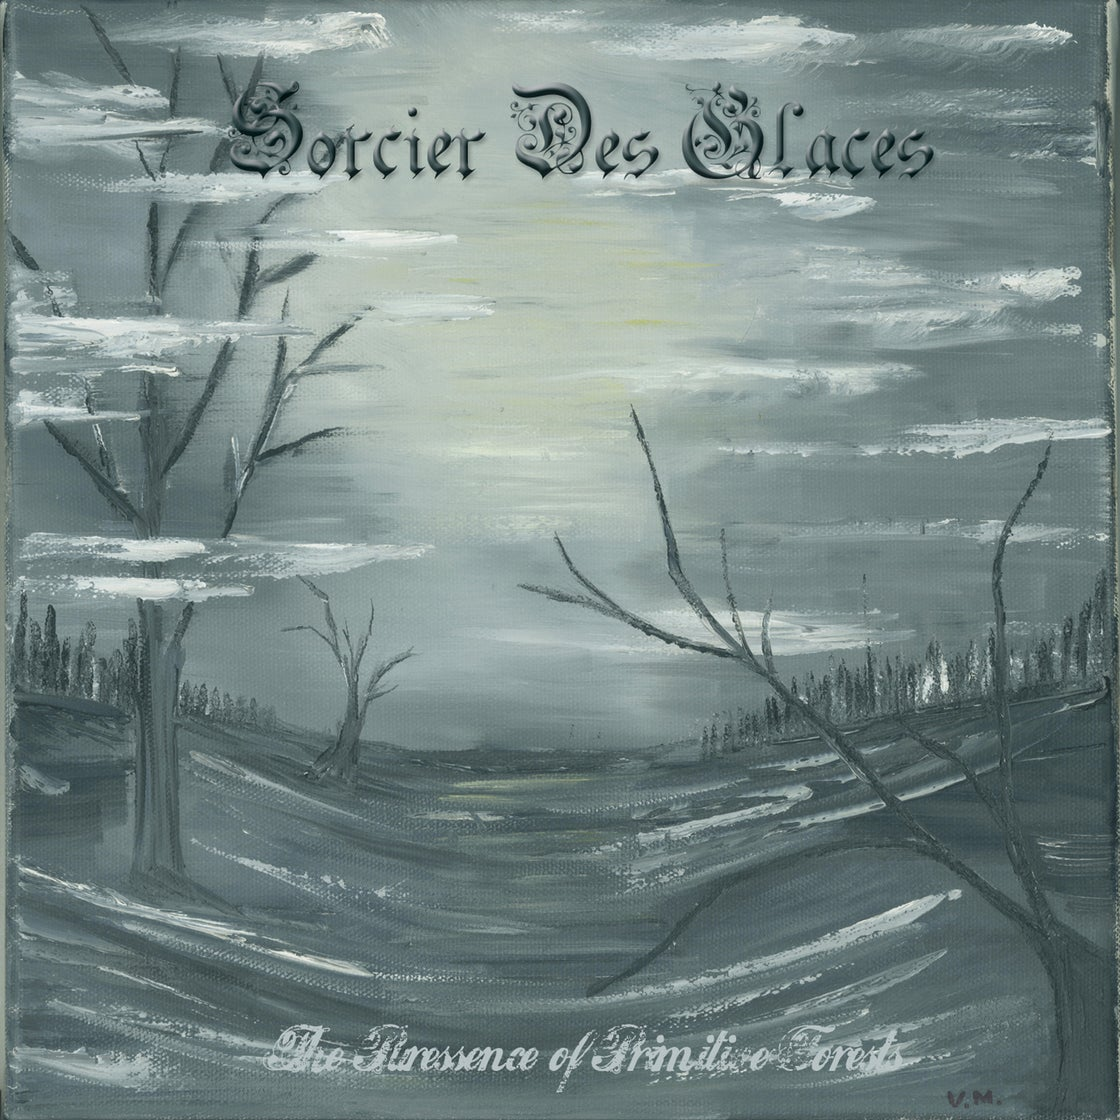 Image of Sorcier Des Glaces -  Moonrise in Total Darkness & The puressence of primitive forests